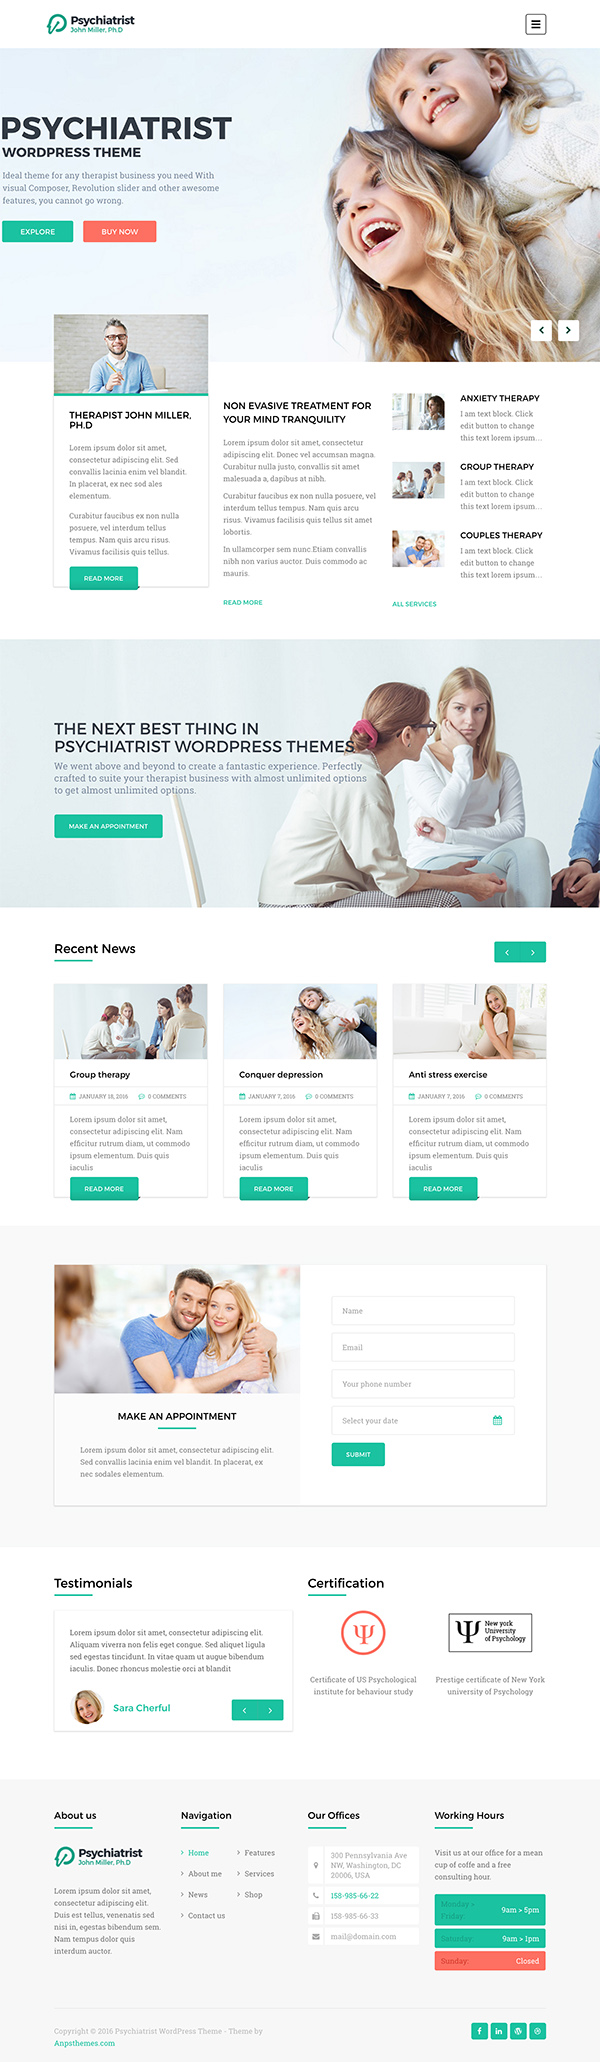 02 GymBreaker Fitness & Gymnasium WordPress Theme